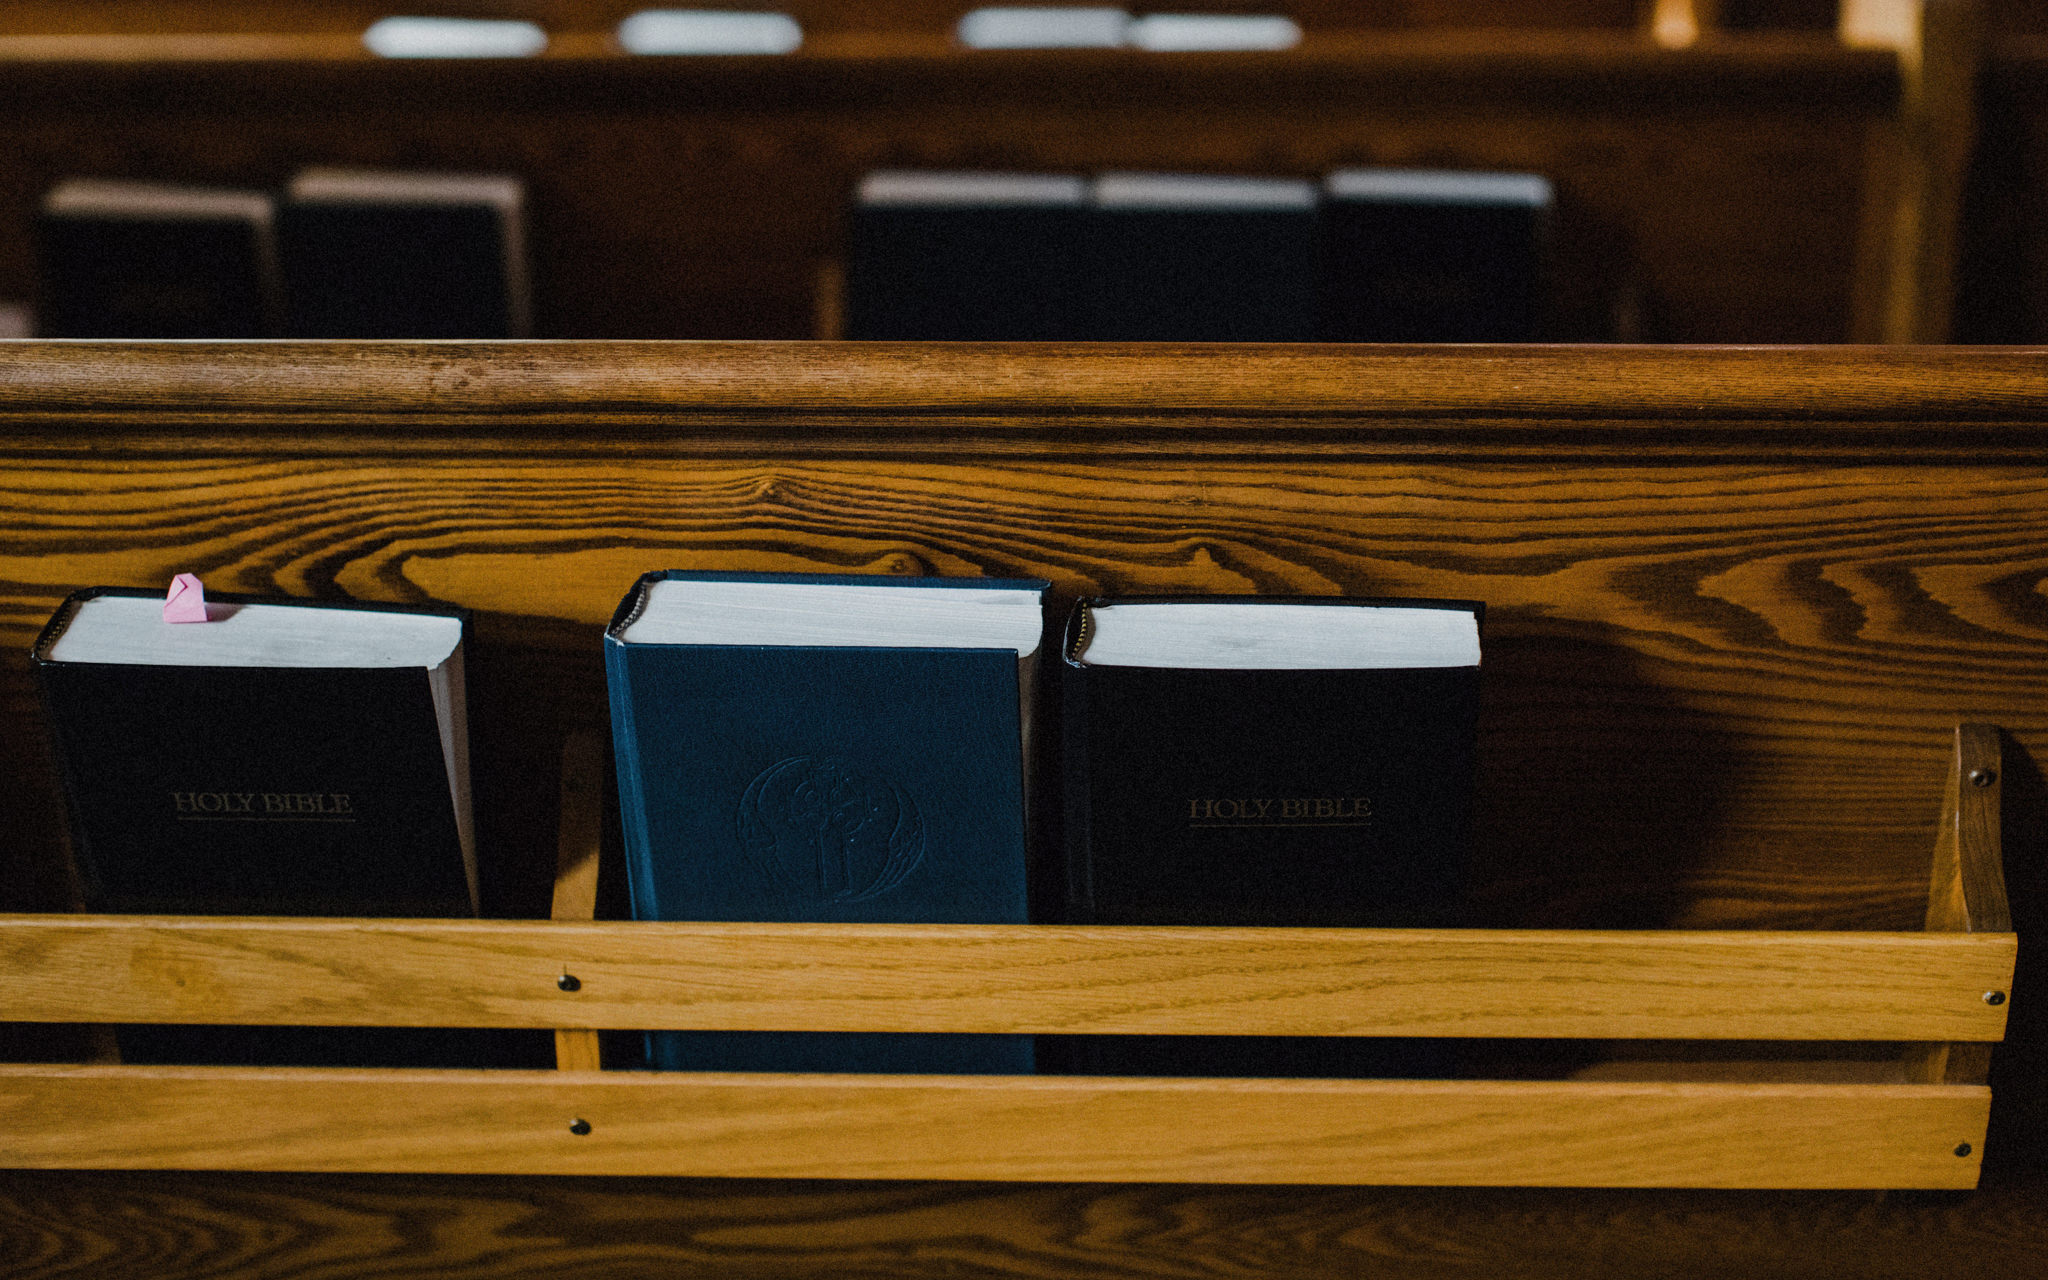 hymnals in church pew